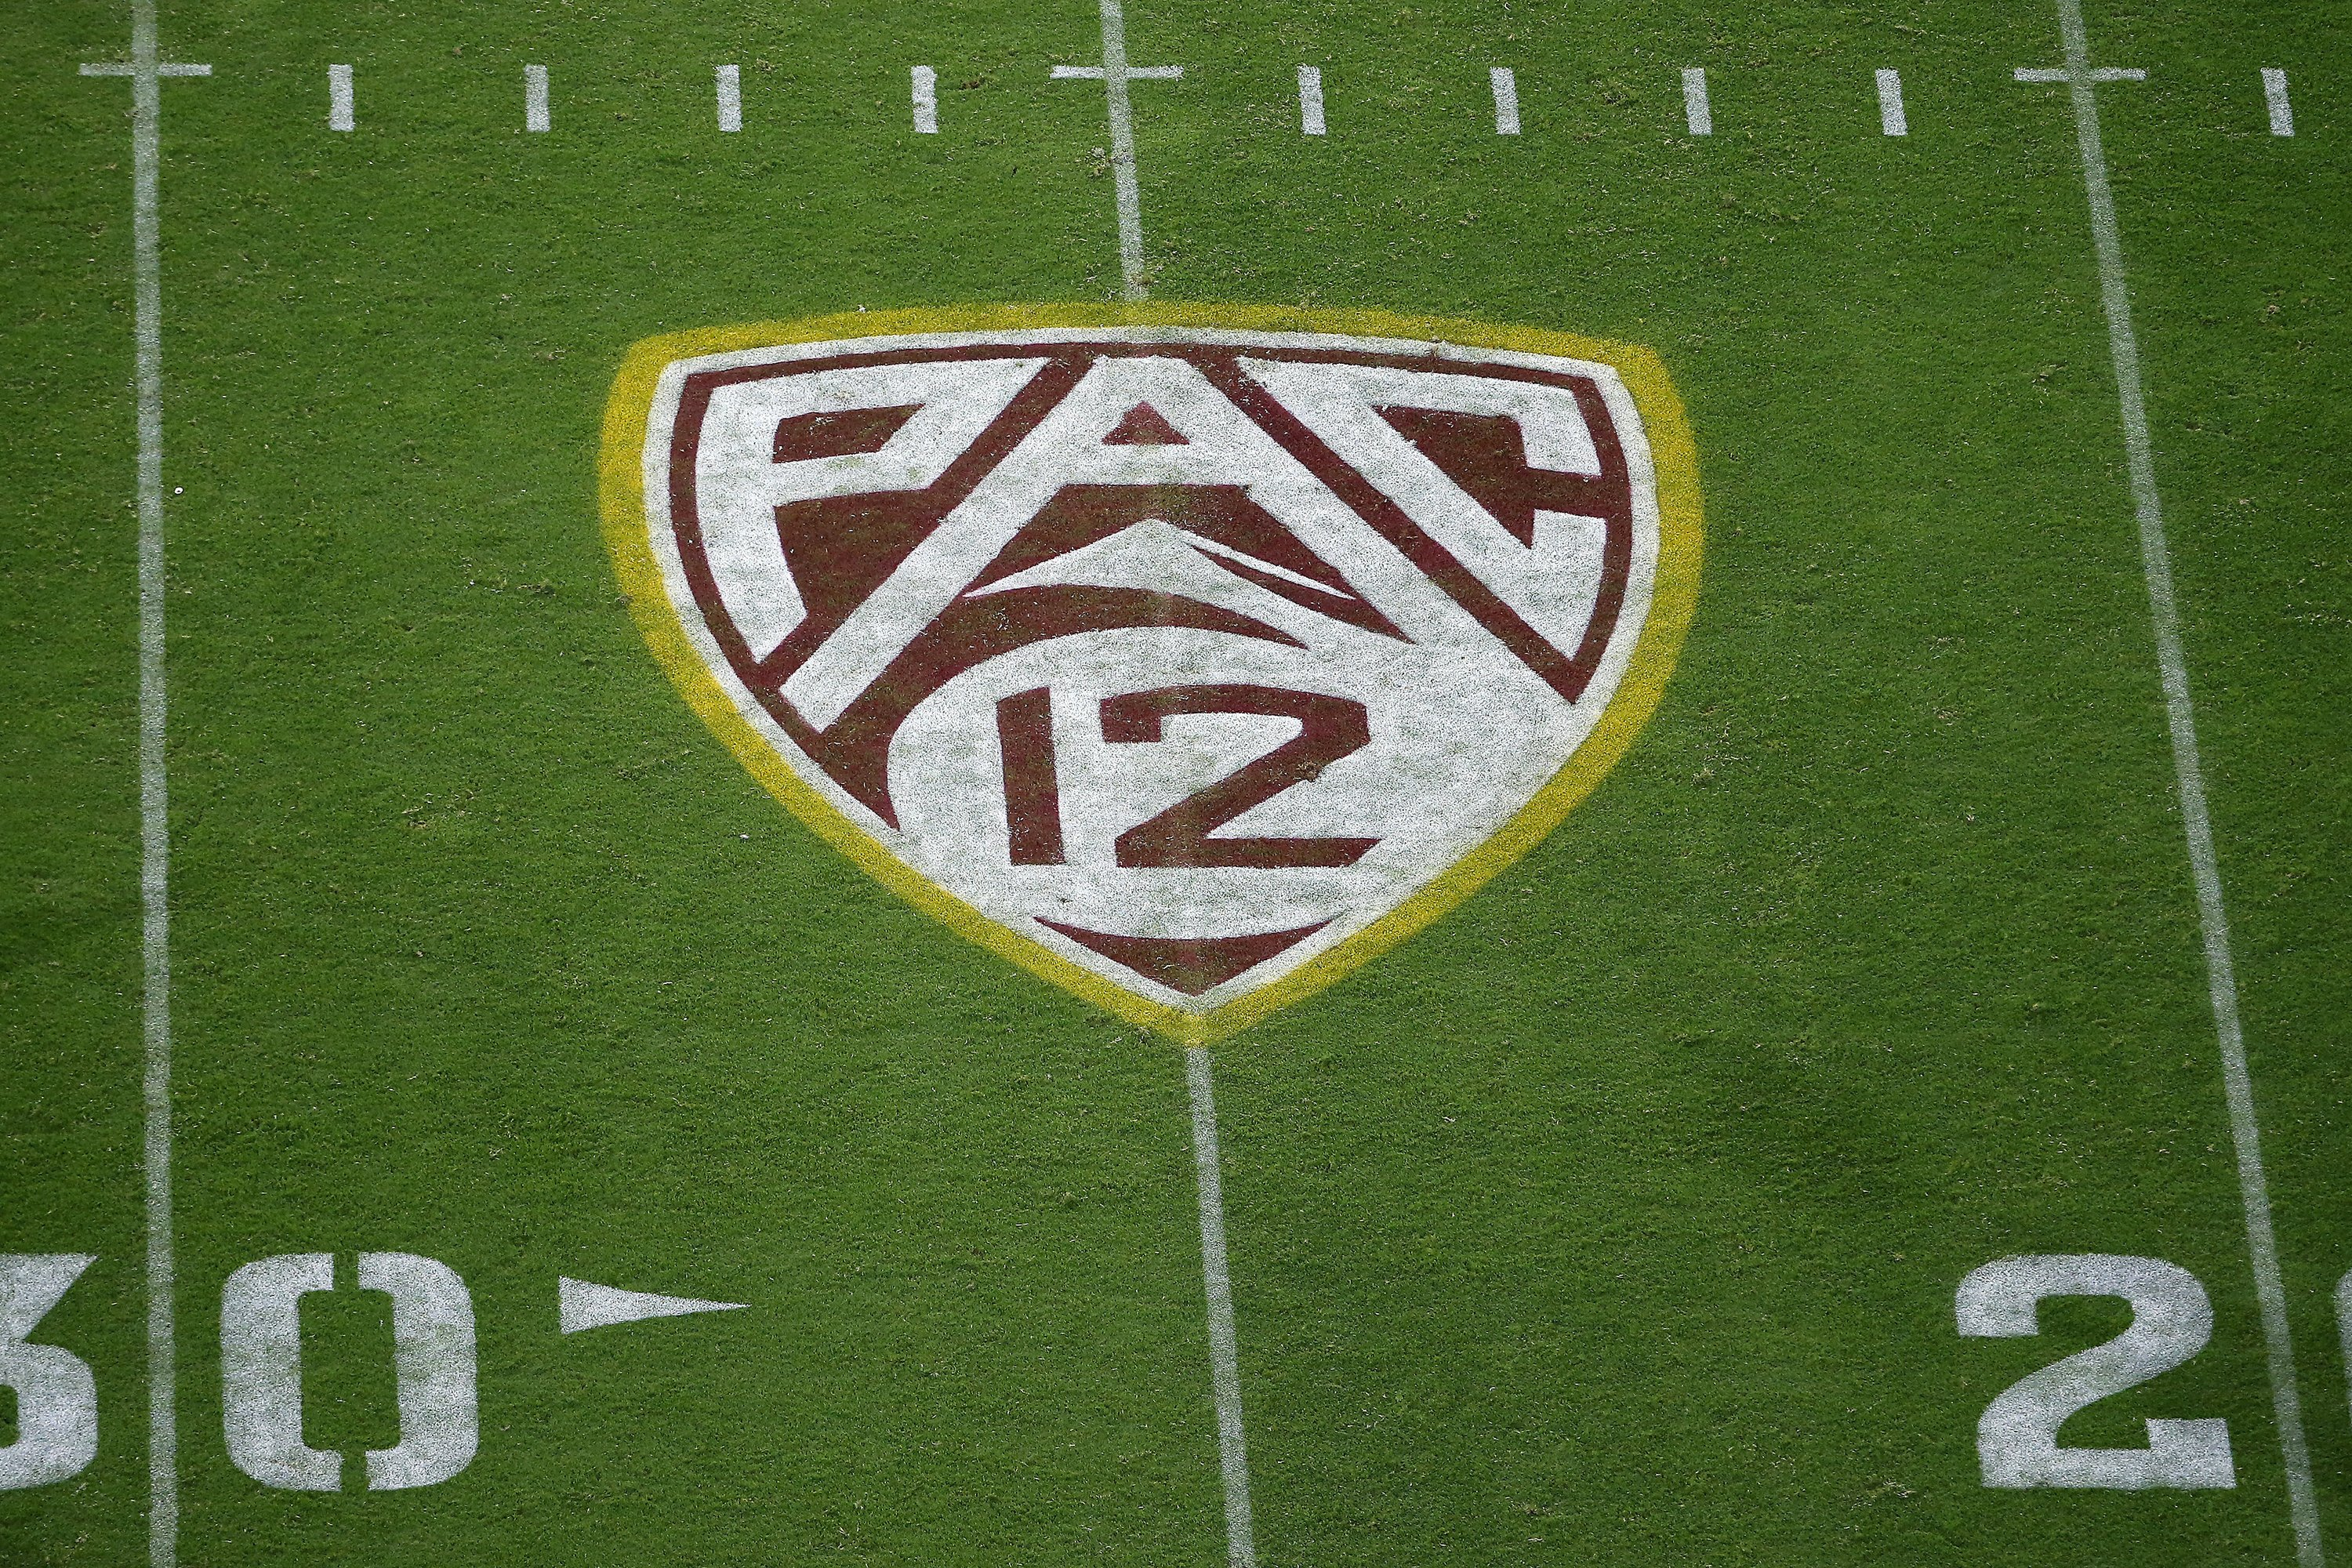 Pac-12 programs differ on reporting student-athlete cases